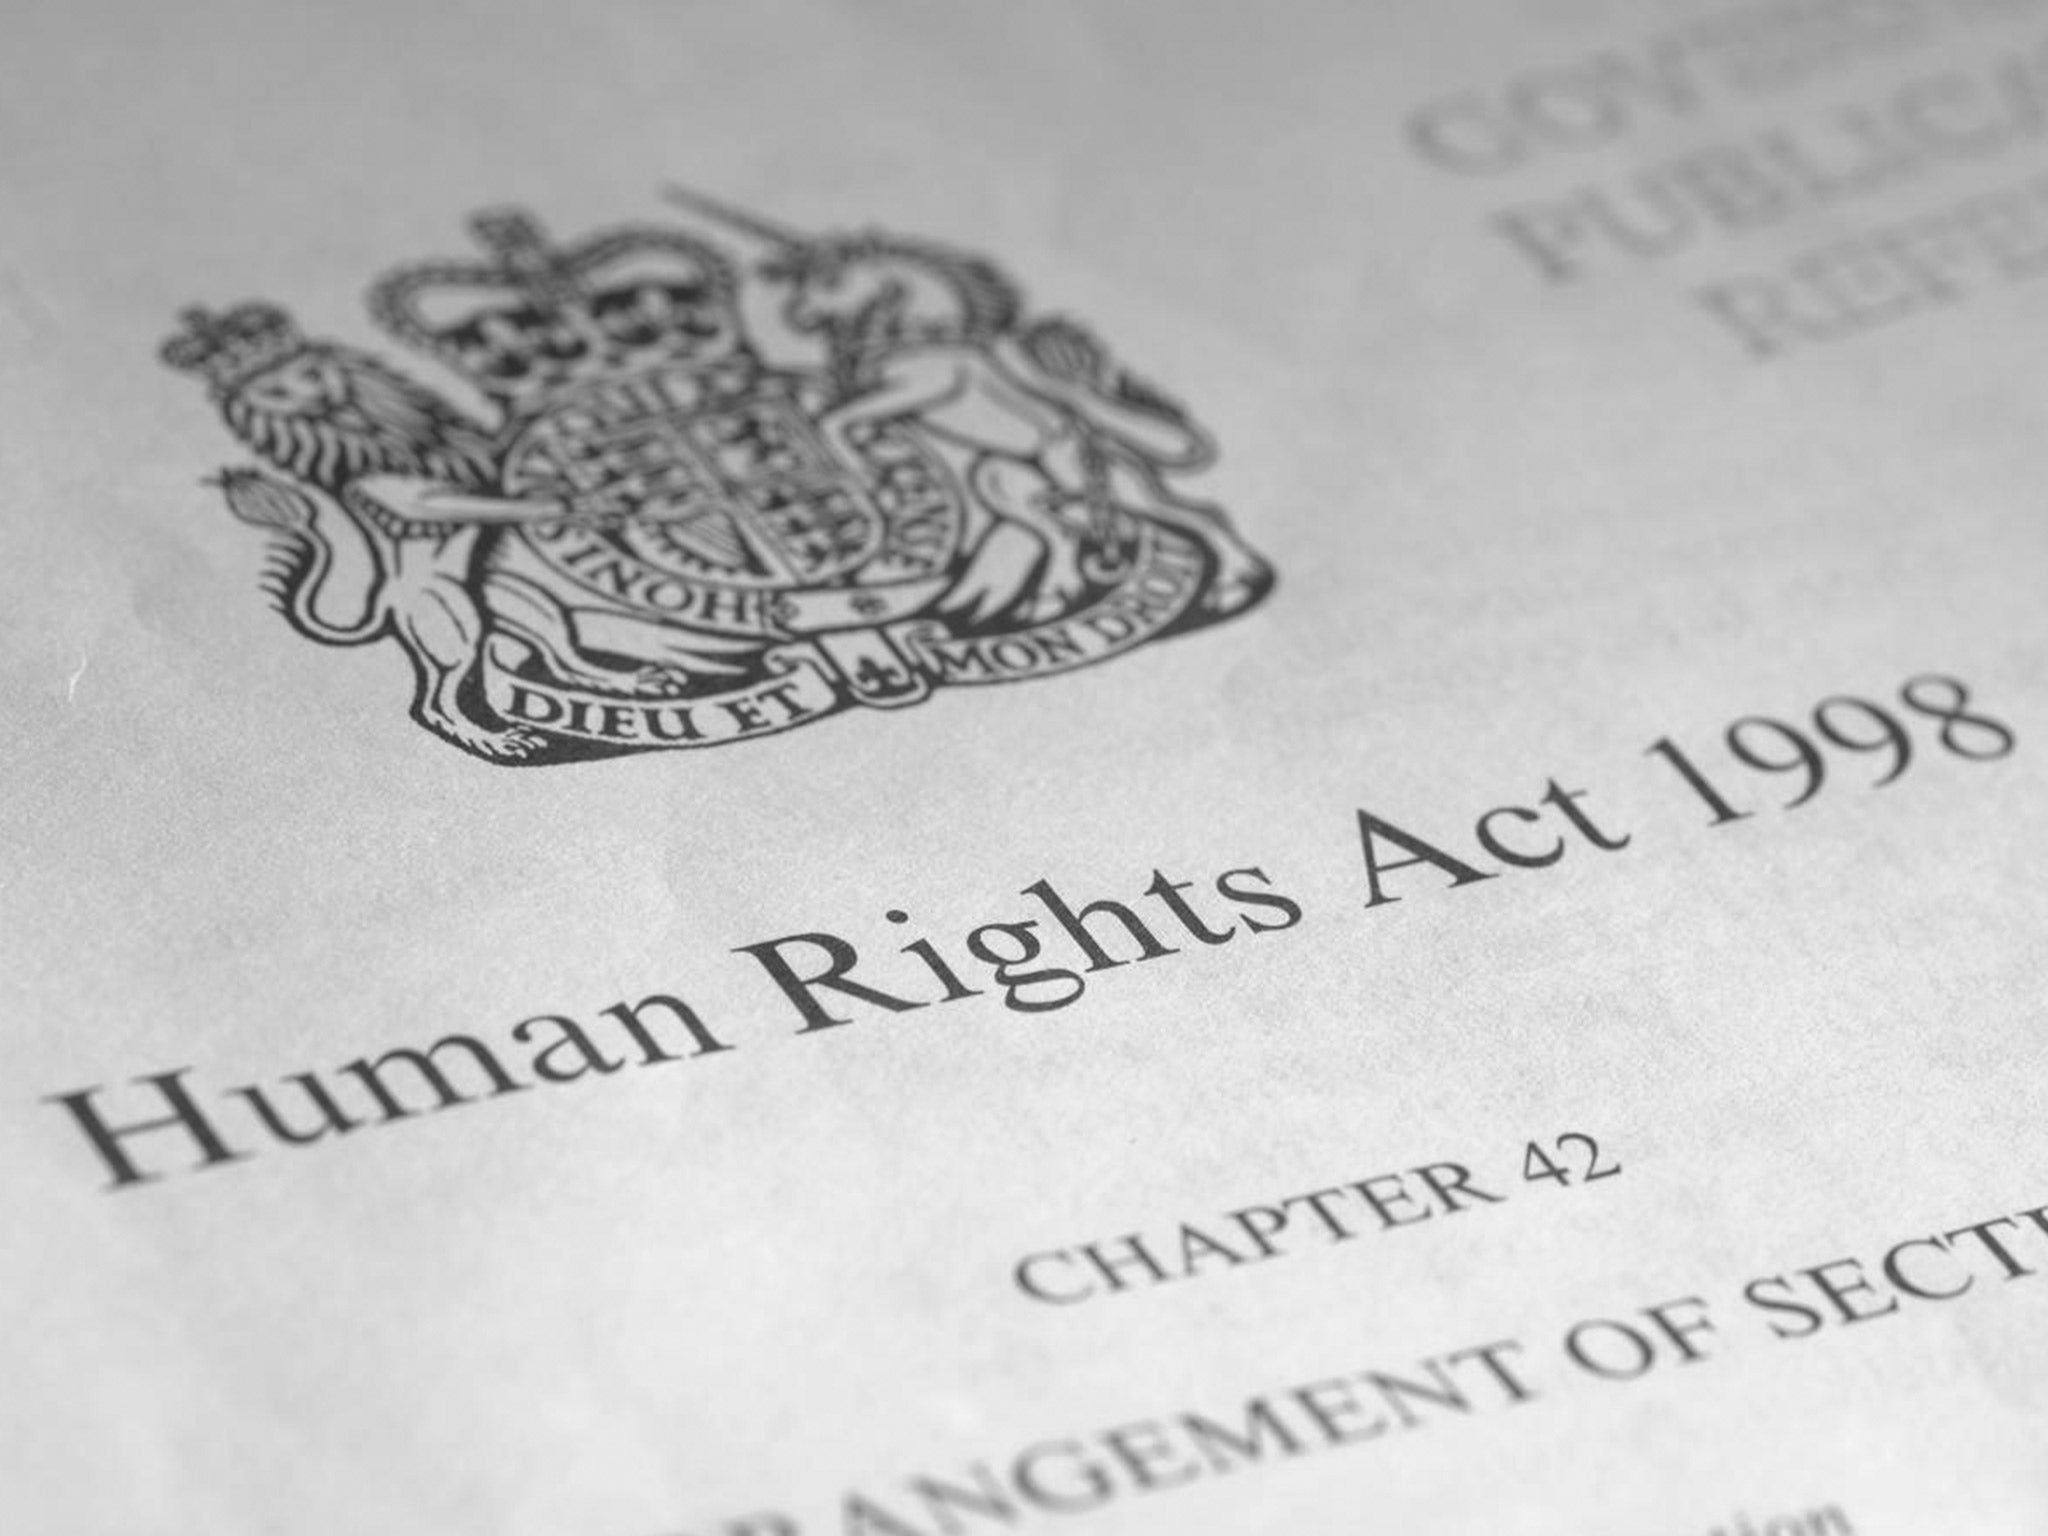 Theresa May to consider axing Human Rights Act after Brexit, minister reveals